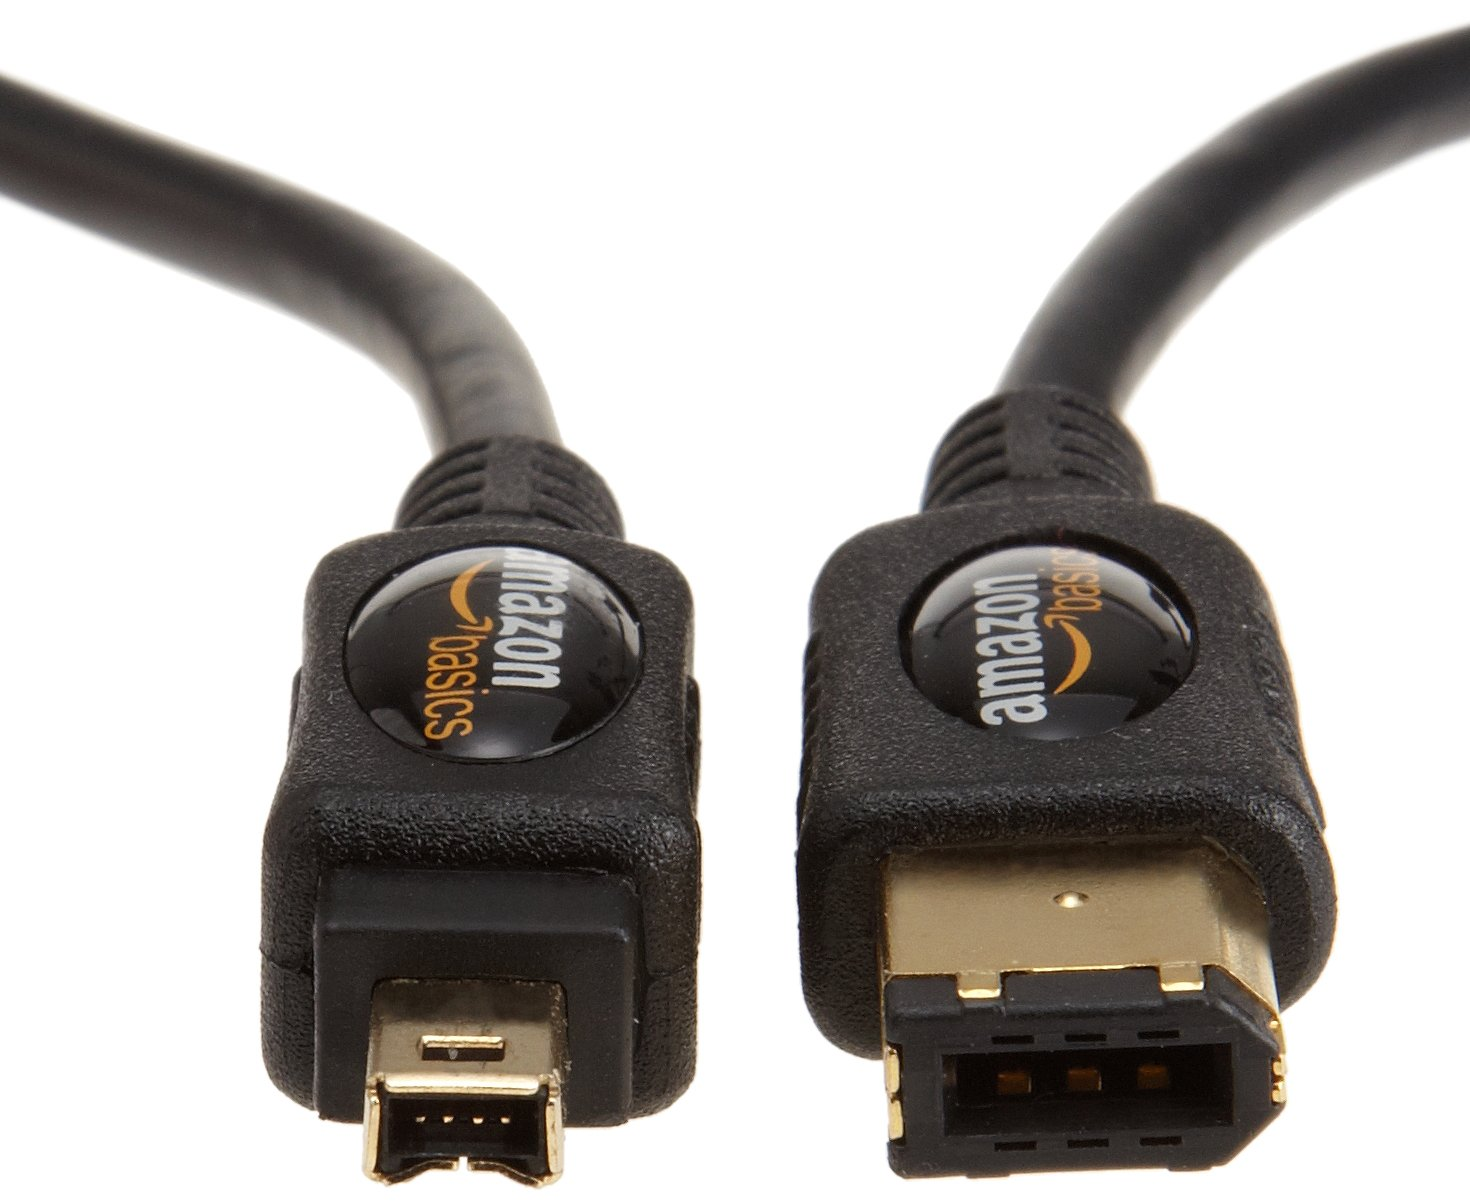 Amazonbasics Ieee 1394 4 Pin 6 Firewire Cable 18 M Feet 400 Likewise Usb Hdmi Laptop To Tv On Computers Accessories